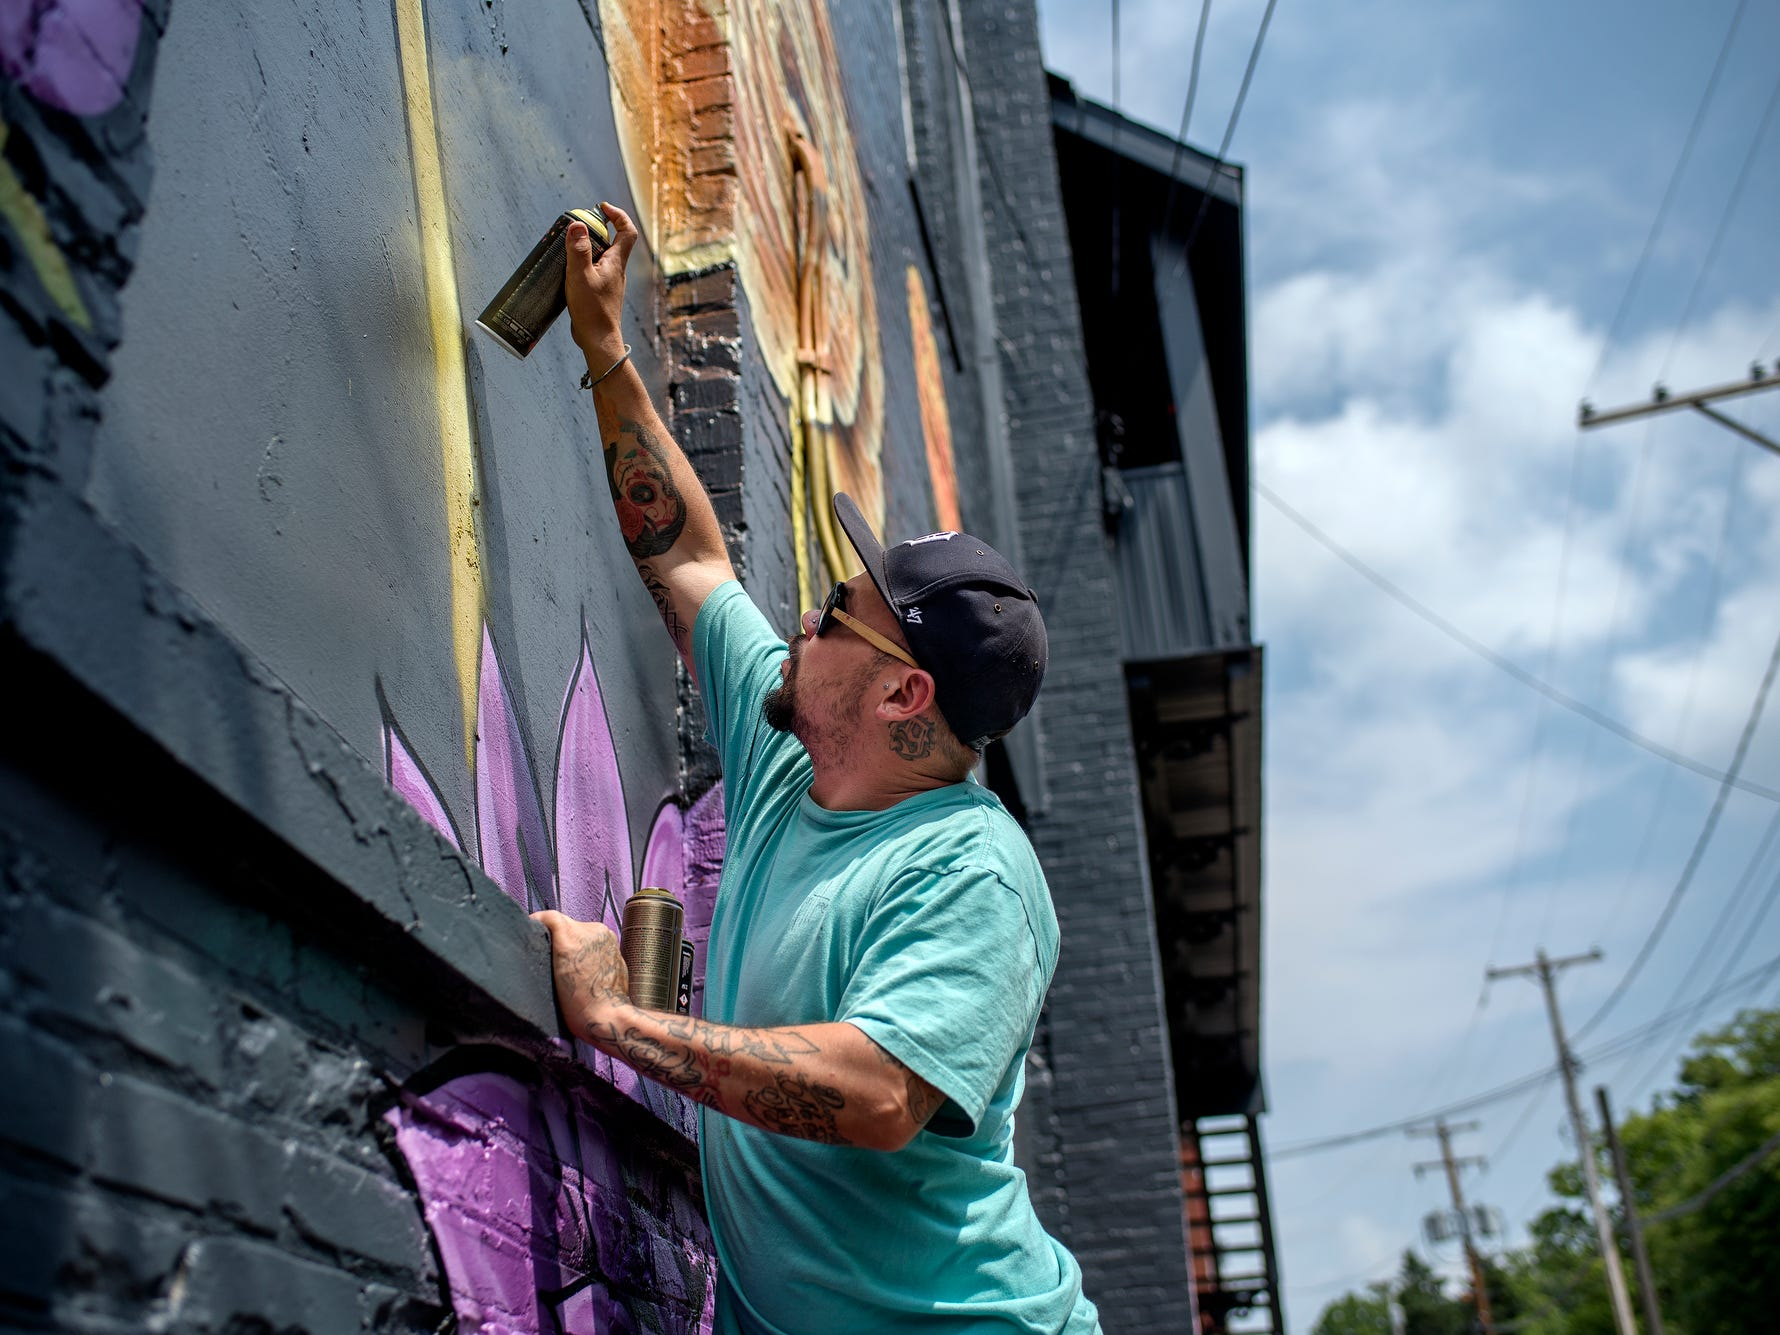 Chris Garcia, 34, of Holland, paints a mural on the side of Kean's Store on Thursday, Aug. 9, 2018, in downtown Mason. His murals are done in graffiti-style with spray can paints.